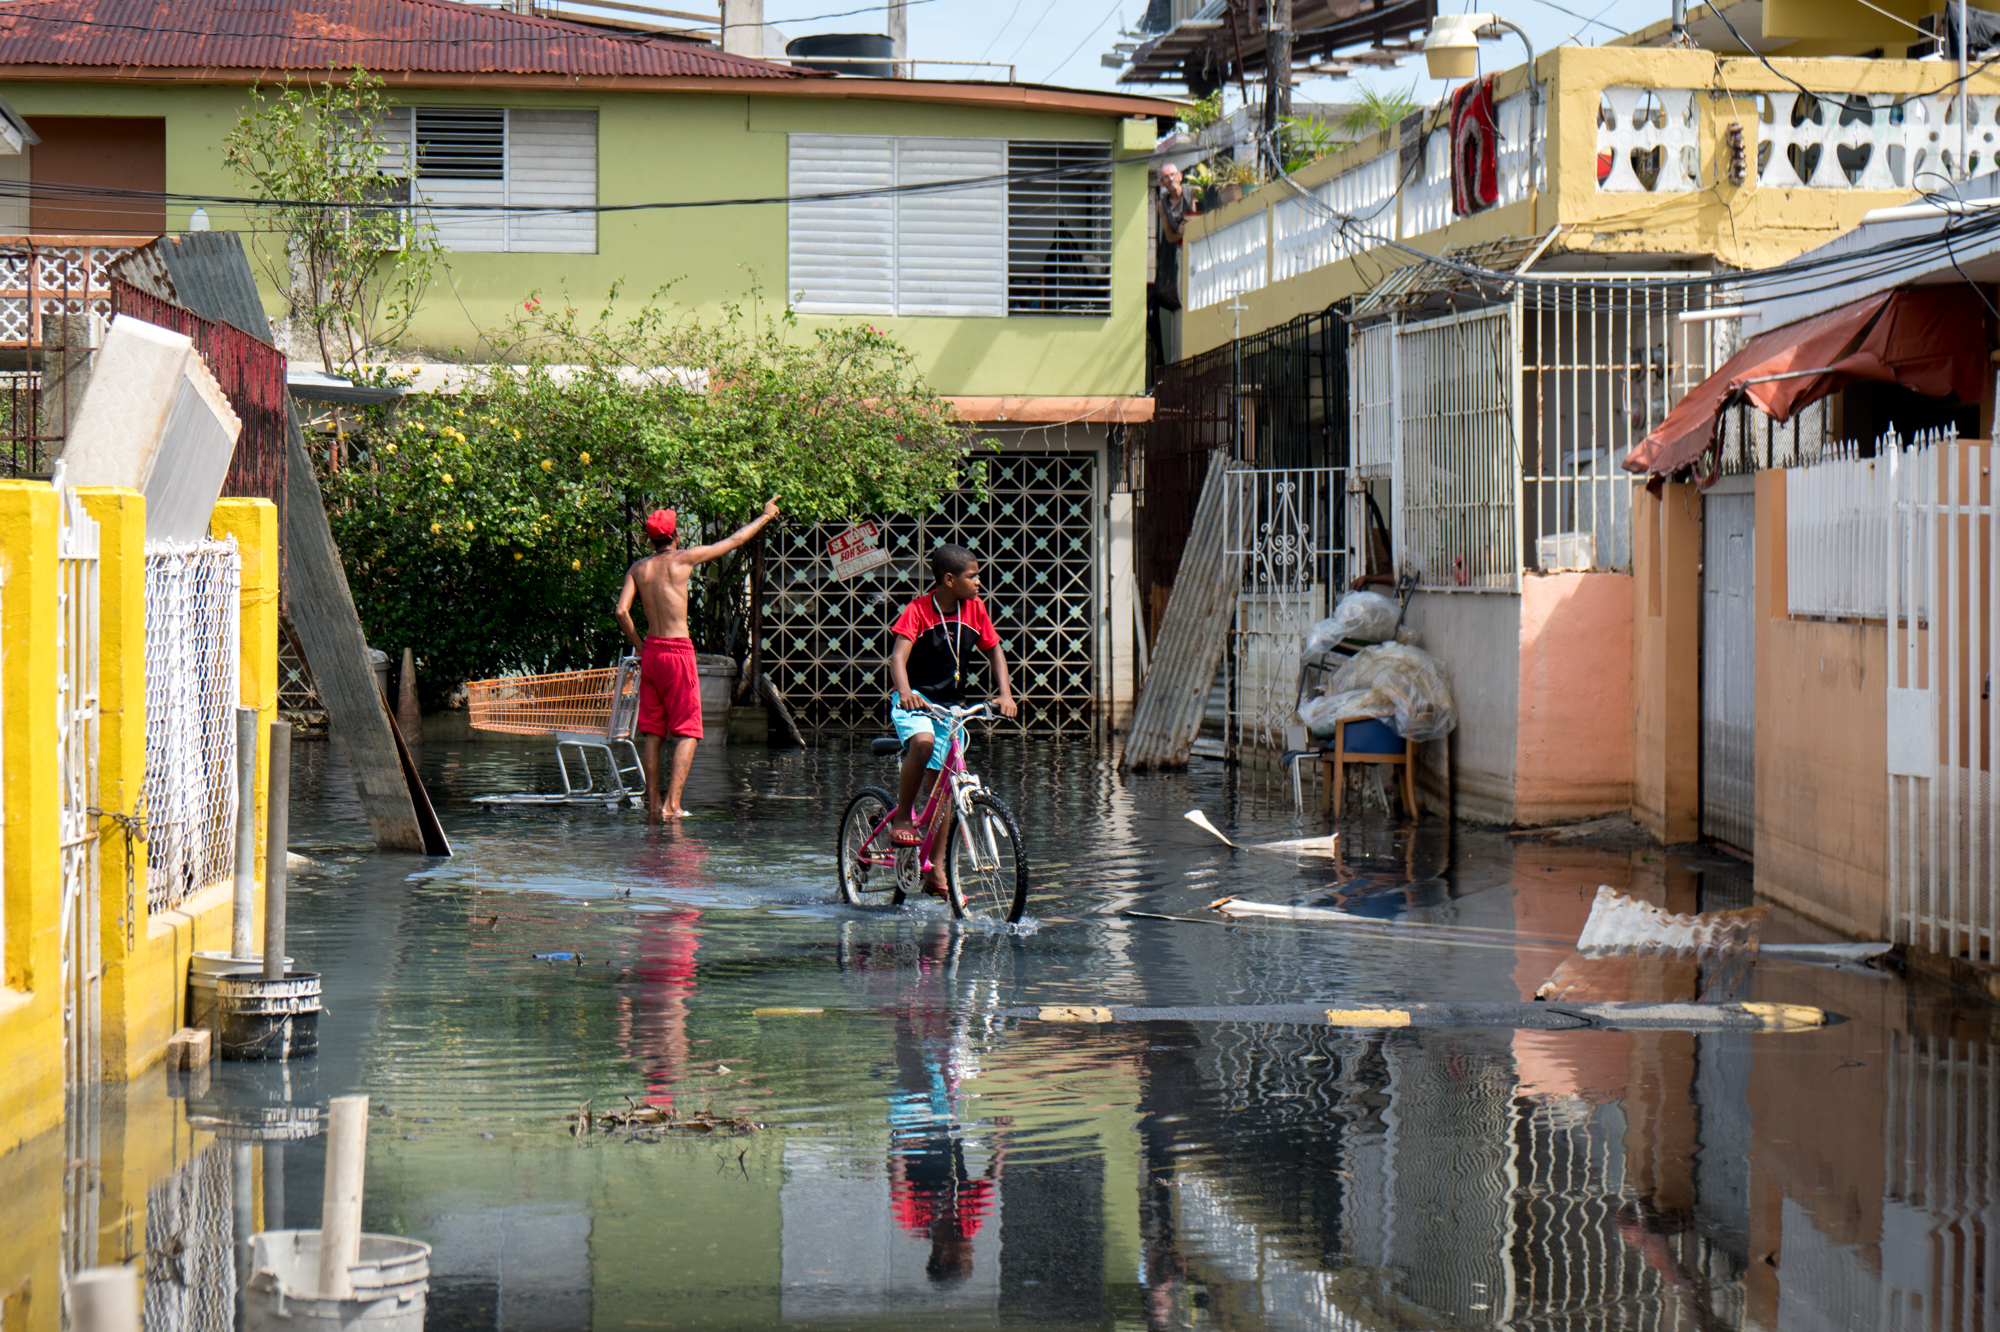 Children walk through standing flood water in the Playita neighborhood. There are small signs that the situation here is improving – but for the residents living through it, the progress is painfully slow. (Angel Valentin for NPR)